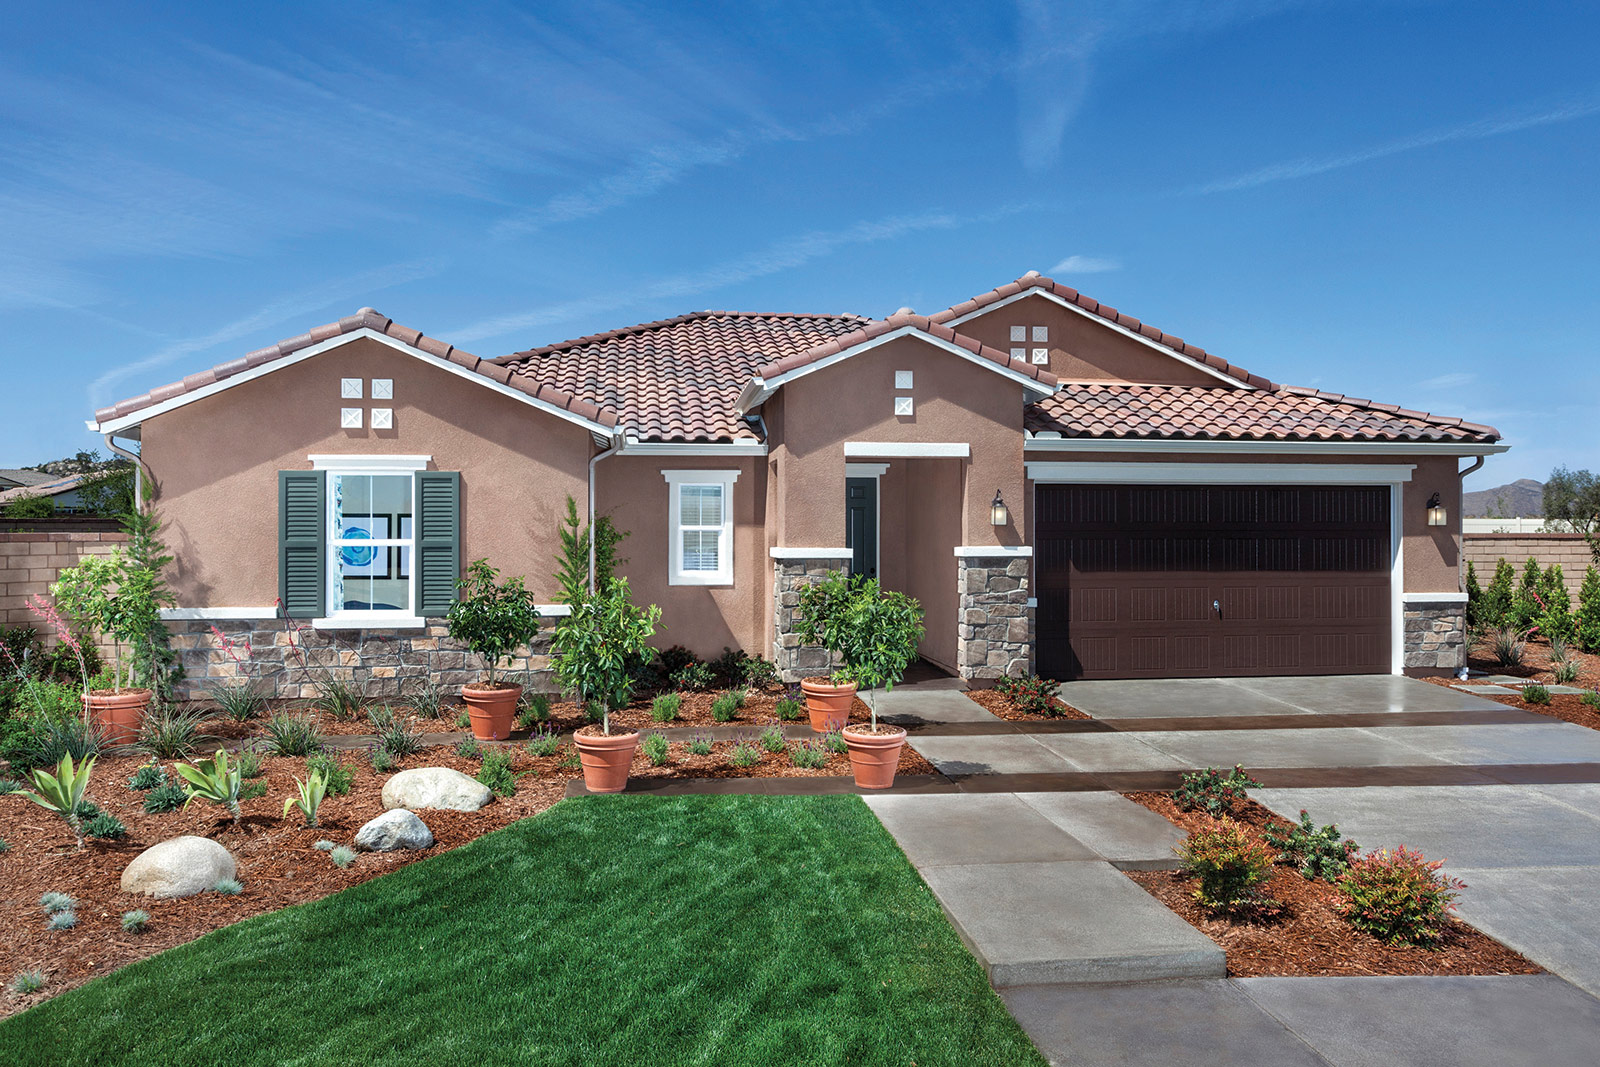 28 old kb homes floor plans 2006 pulte floor plans for Classic house 2006